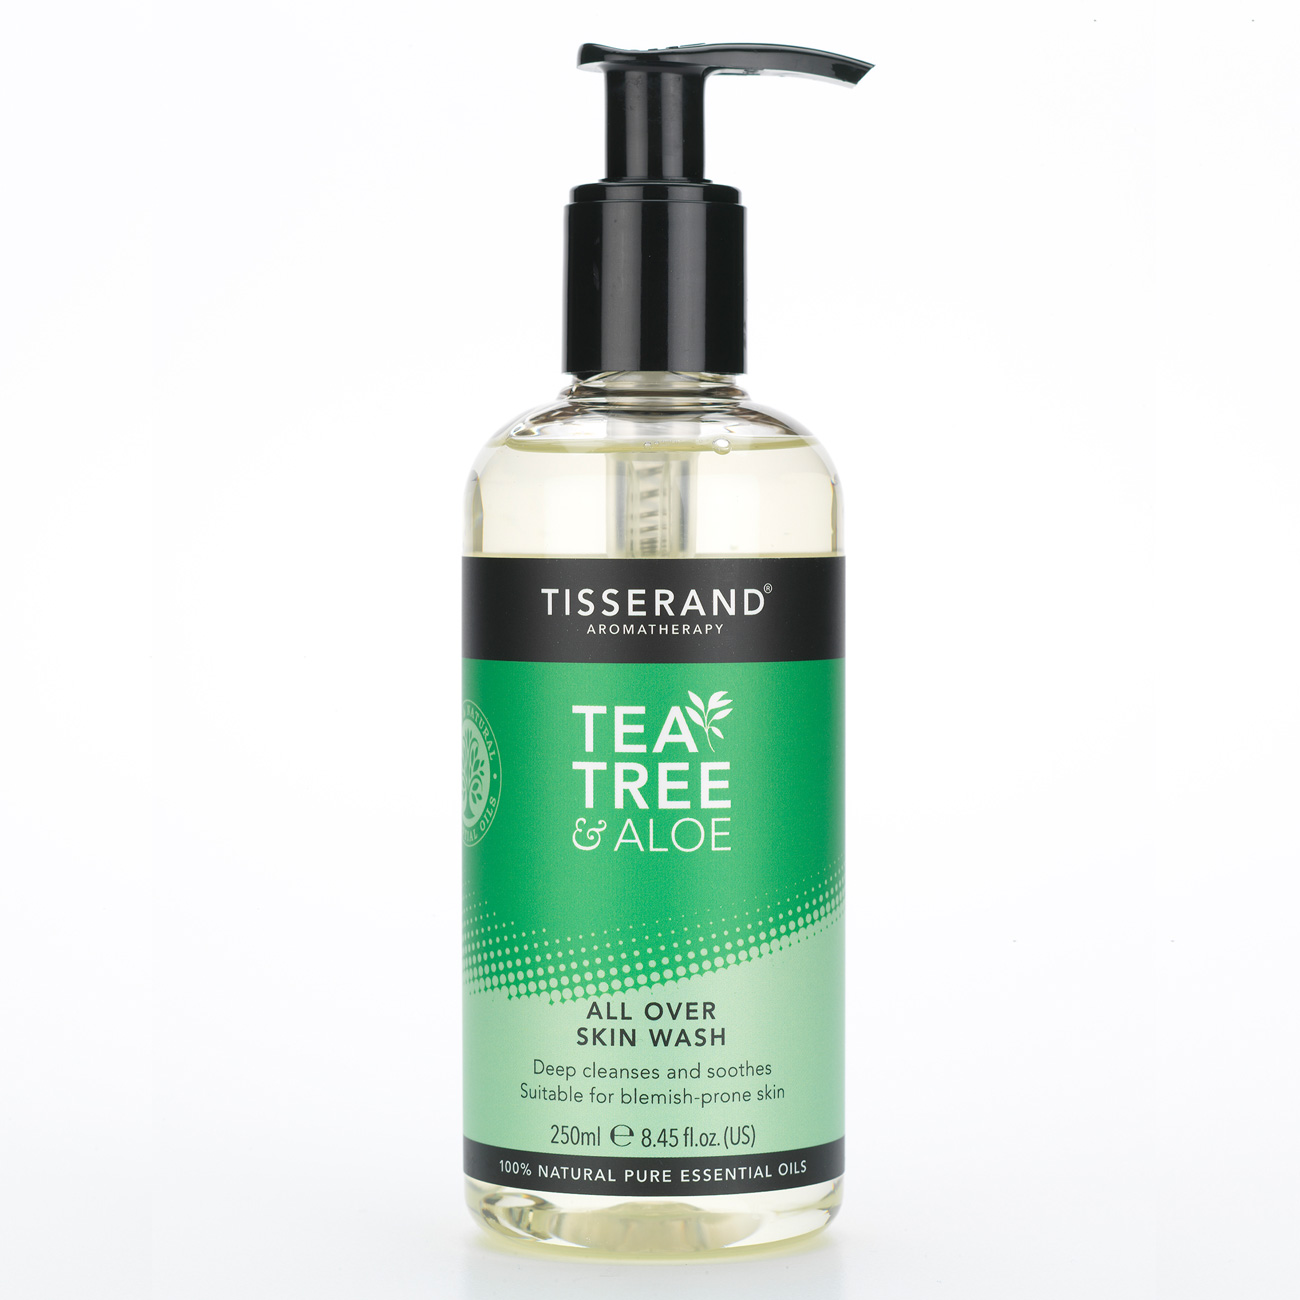 Tisserand-Aromatherapy-Tea-tree-&-Aloe-All-Over-Skin-Wash_1300x1300_web